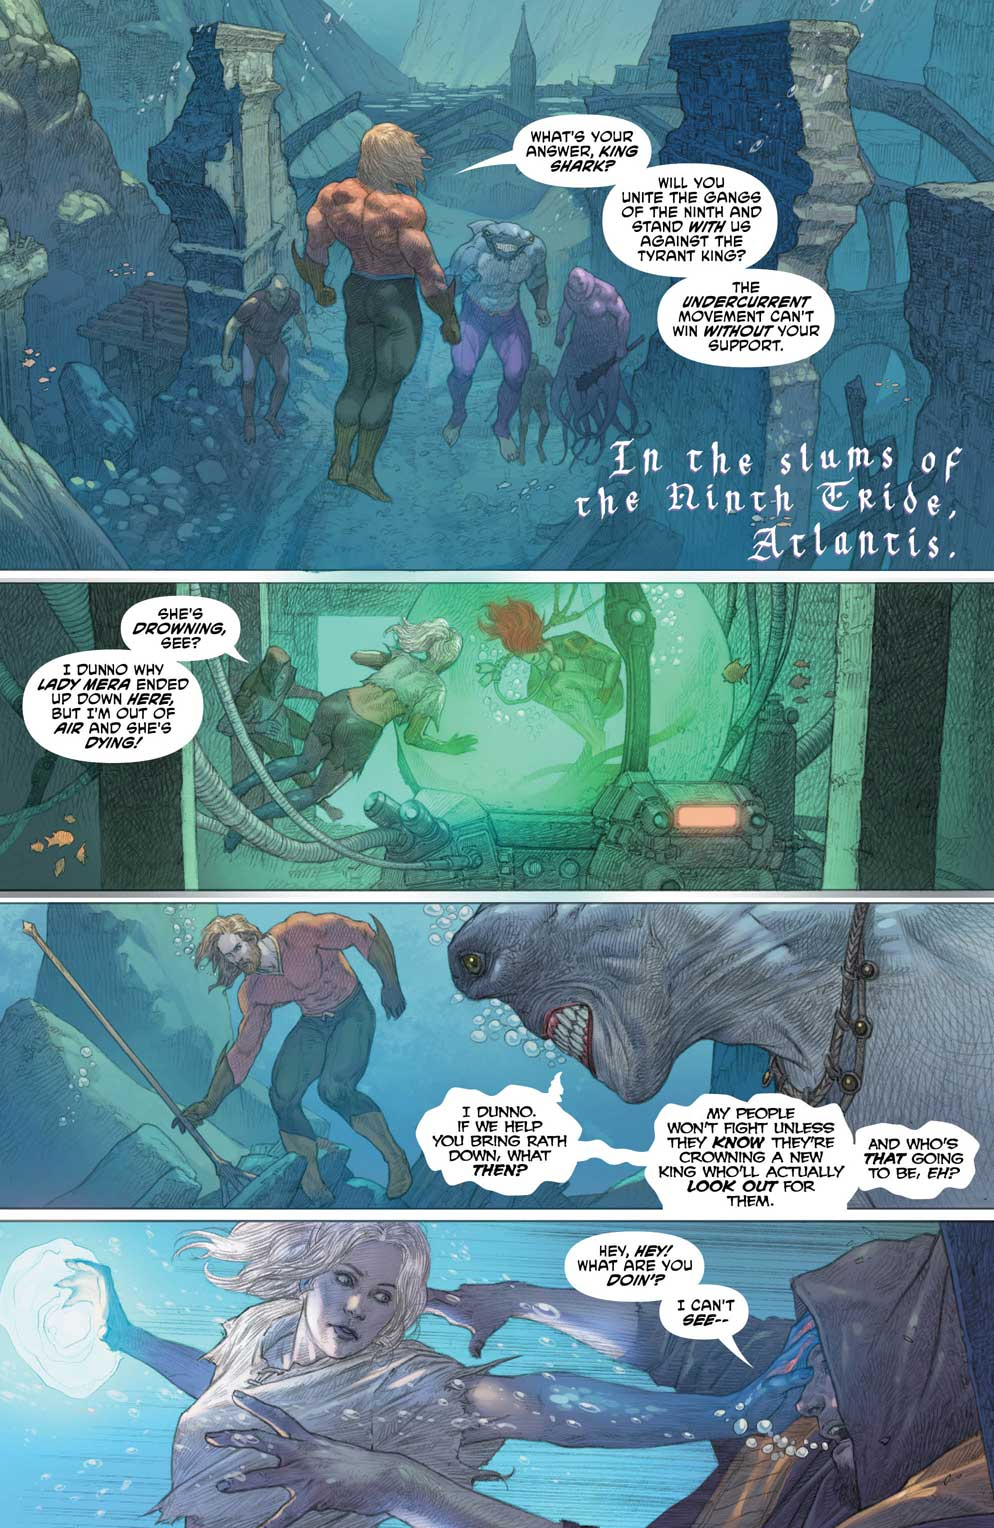 Aquaman 32_1 - DC Comics News